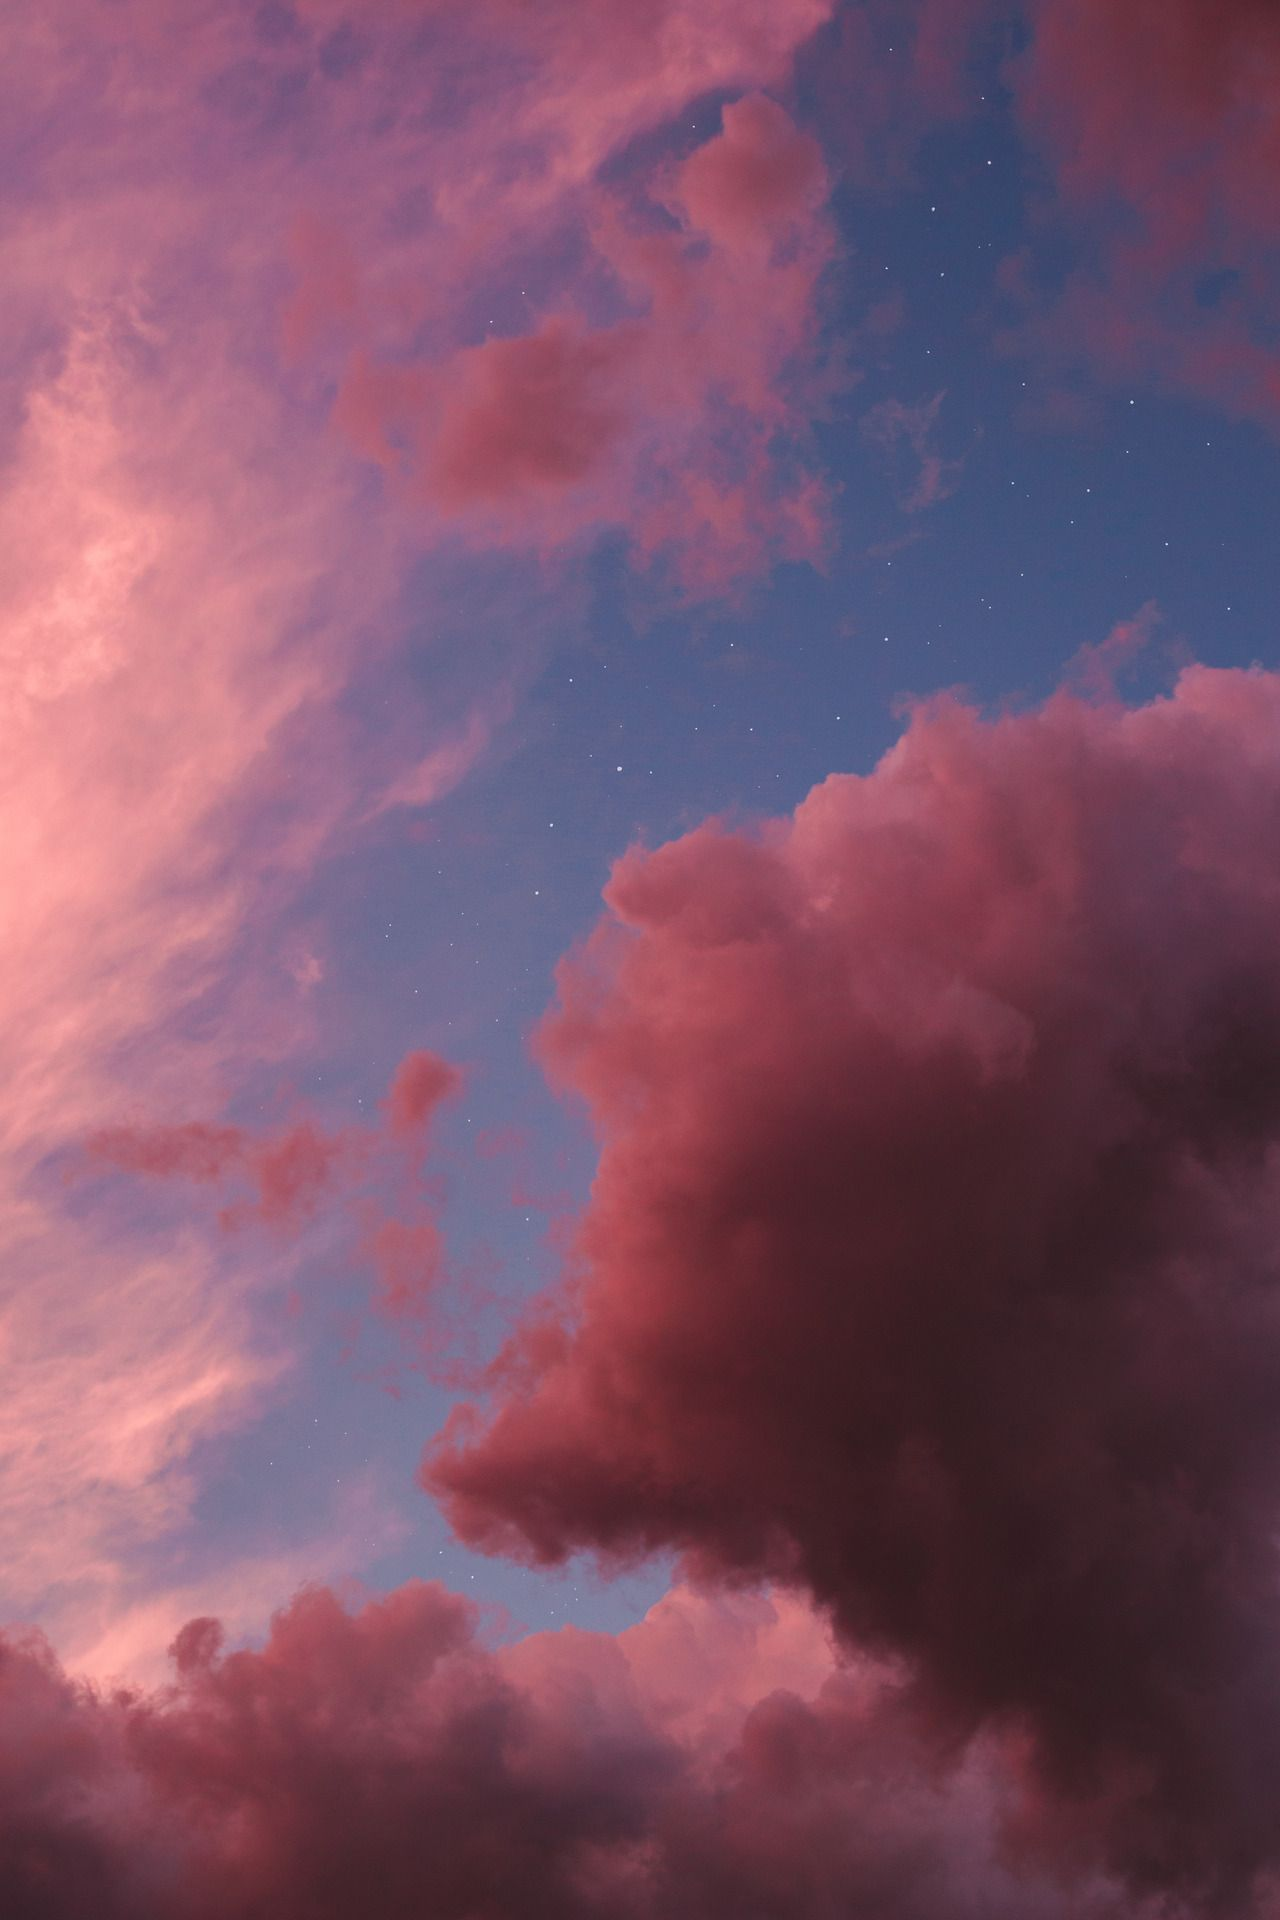 Sky Tumblr Night Sky Wallpaper Sky Aesthetic Aesthetic Iphone Wallpaper